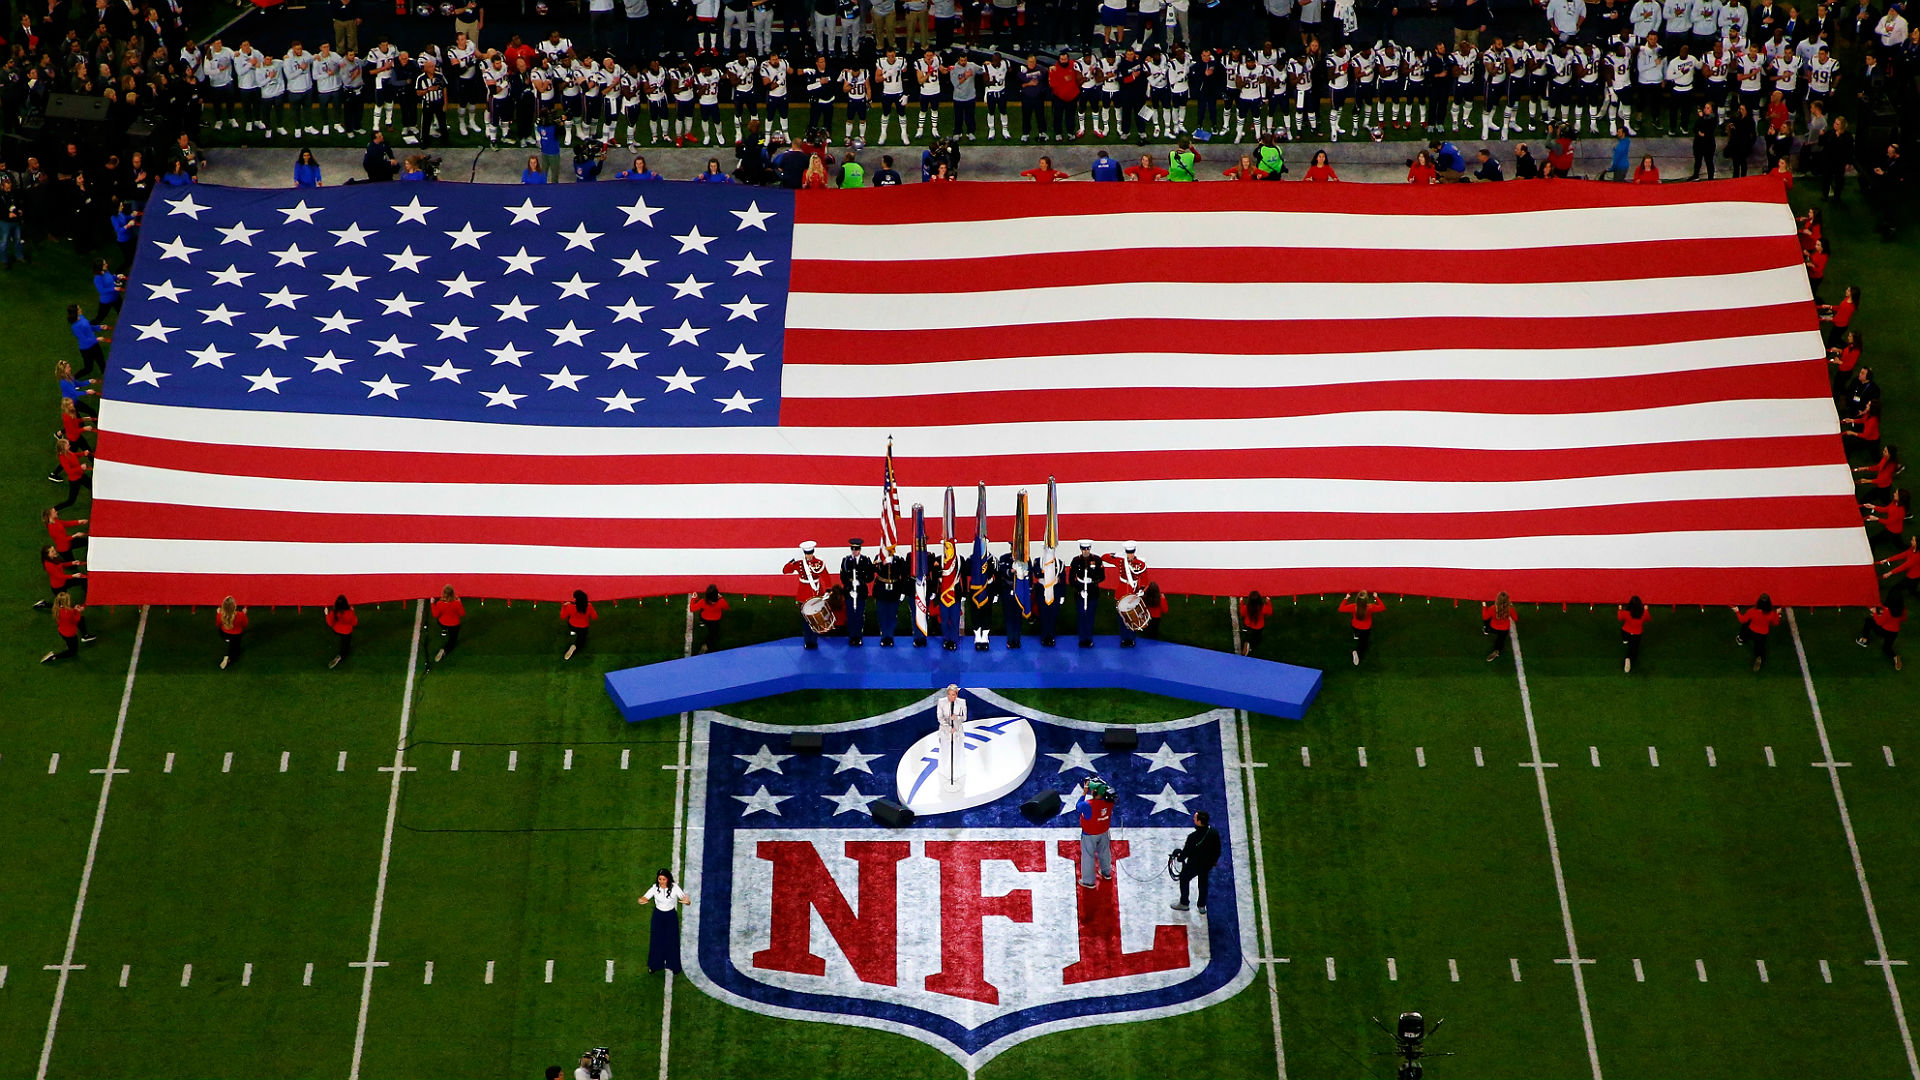 Bowing to Trump, NFL will require players to stand for anthem